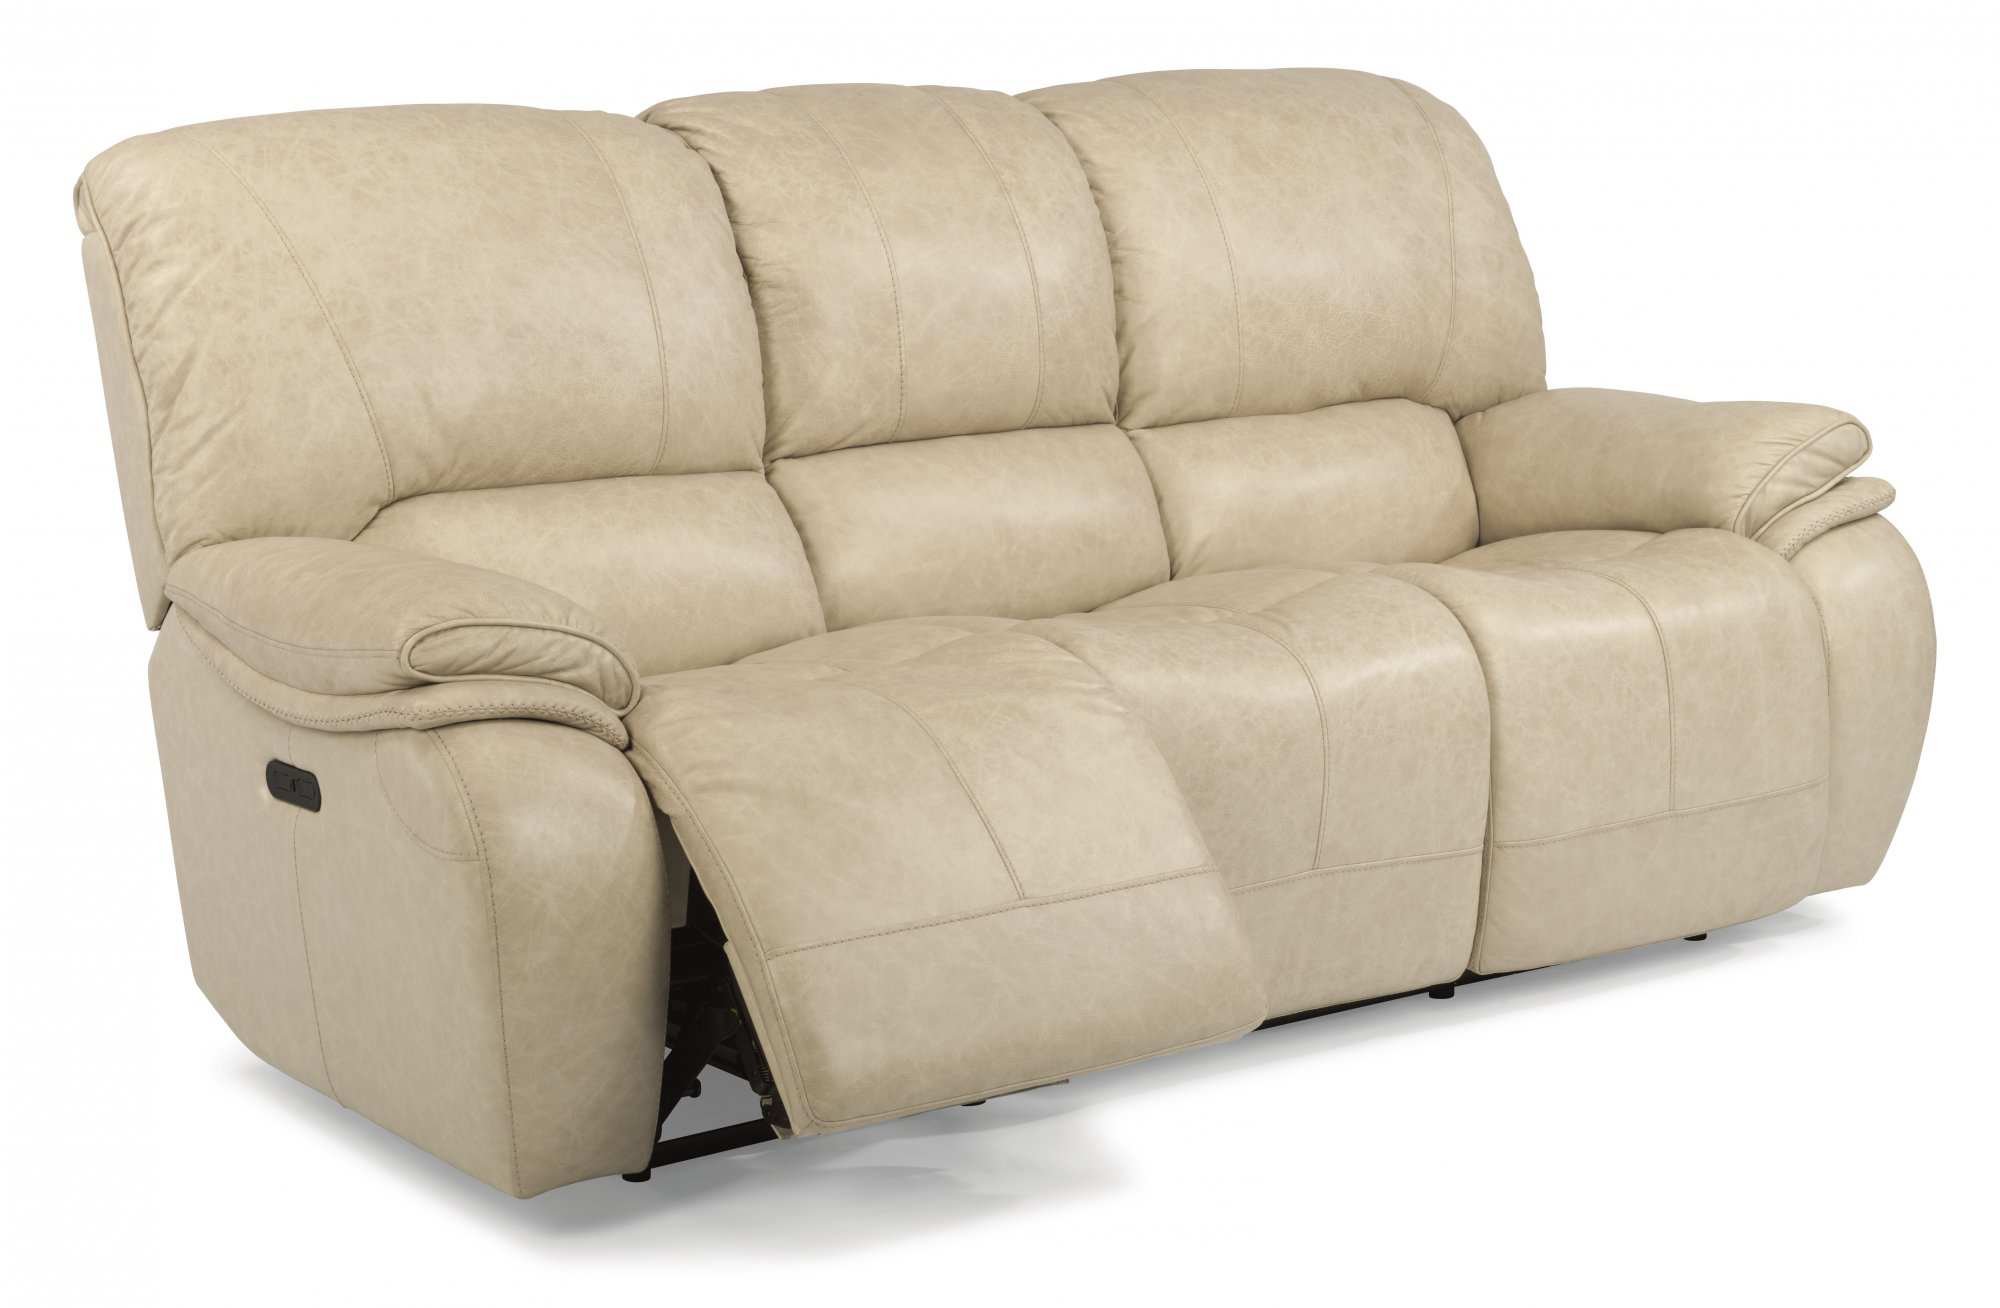 sofas and loveseats  reclining sofas and sleepers  flexsteel - leather power reclining sofa with power headrests